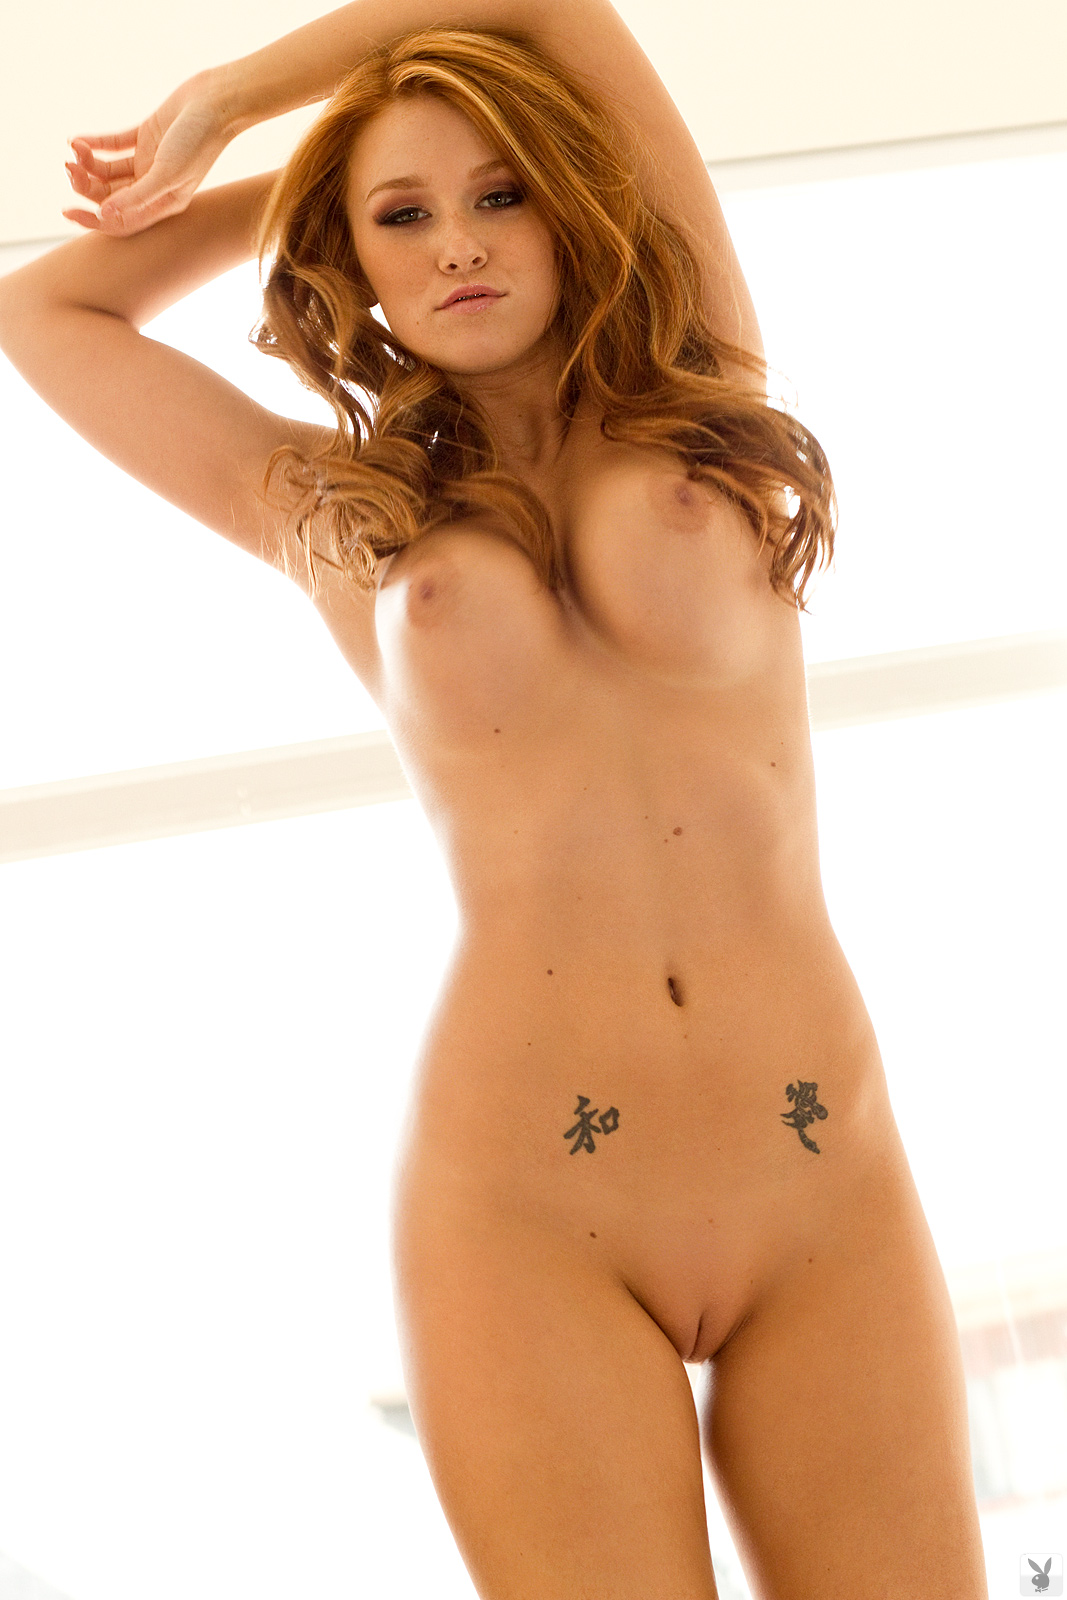 Leanna Decker Cyber Girl Of The Week July